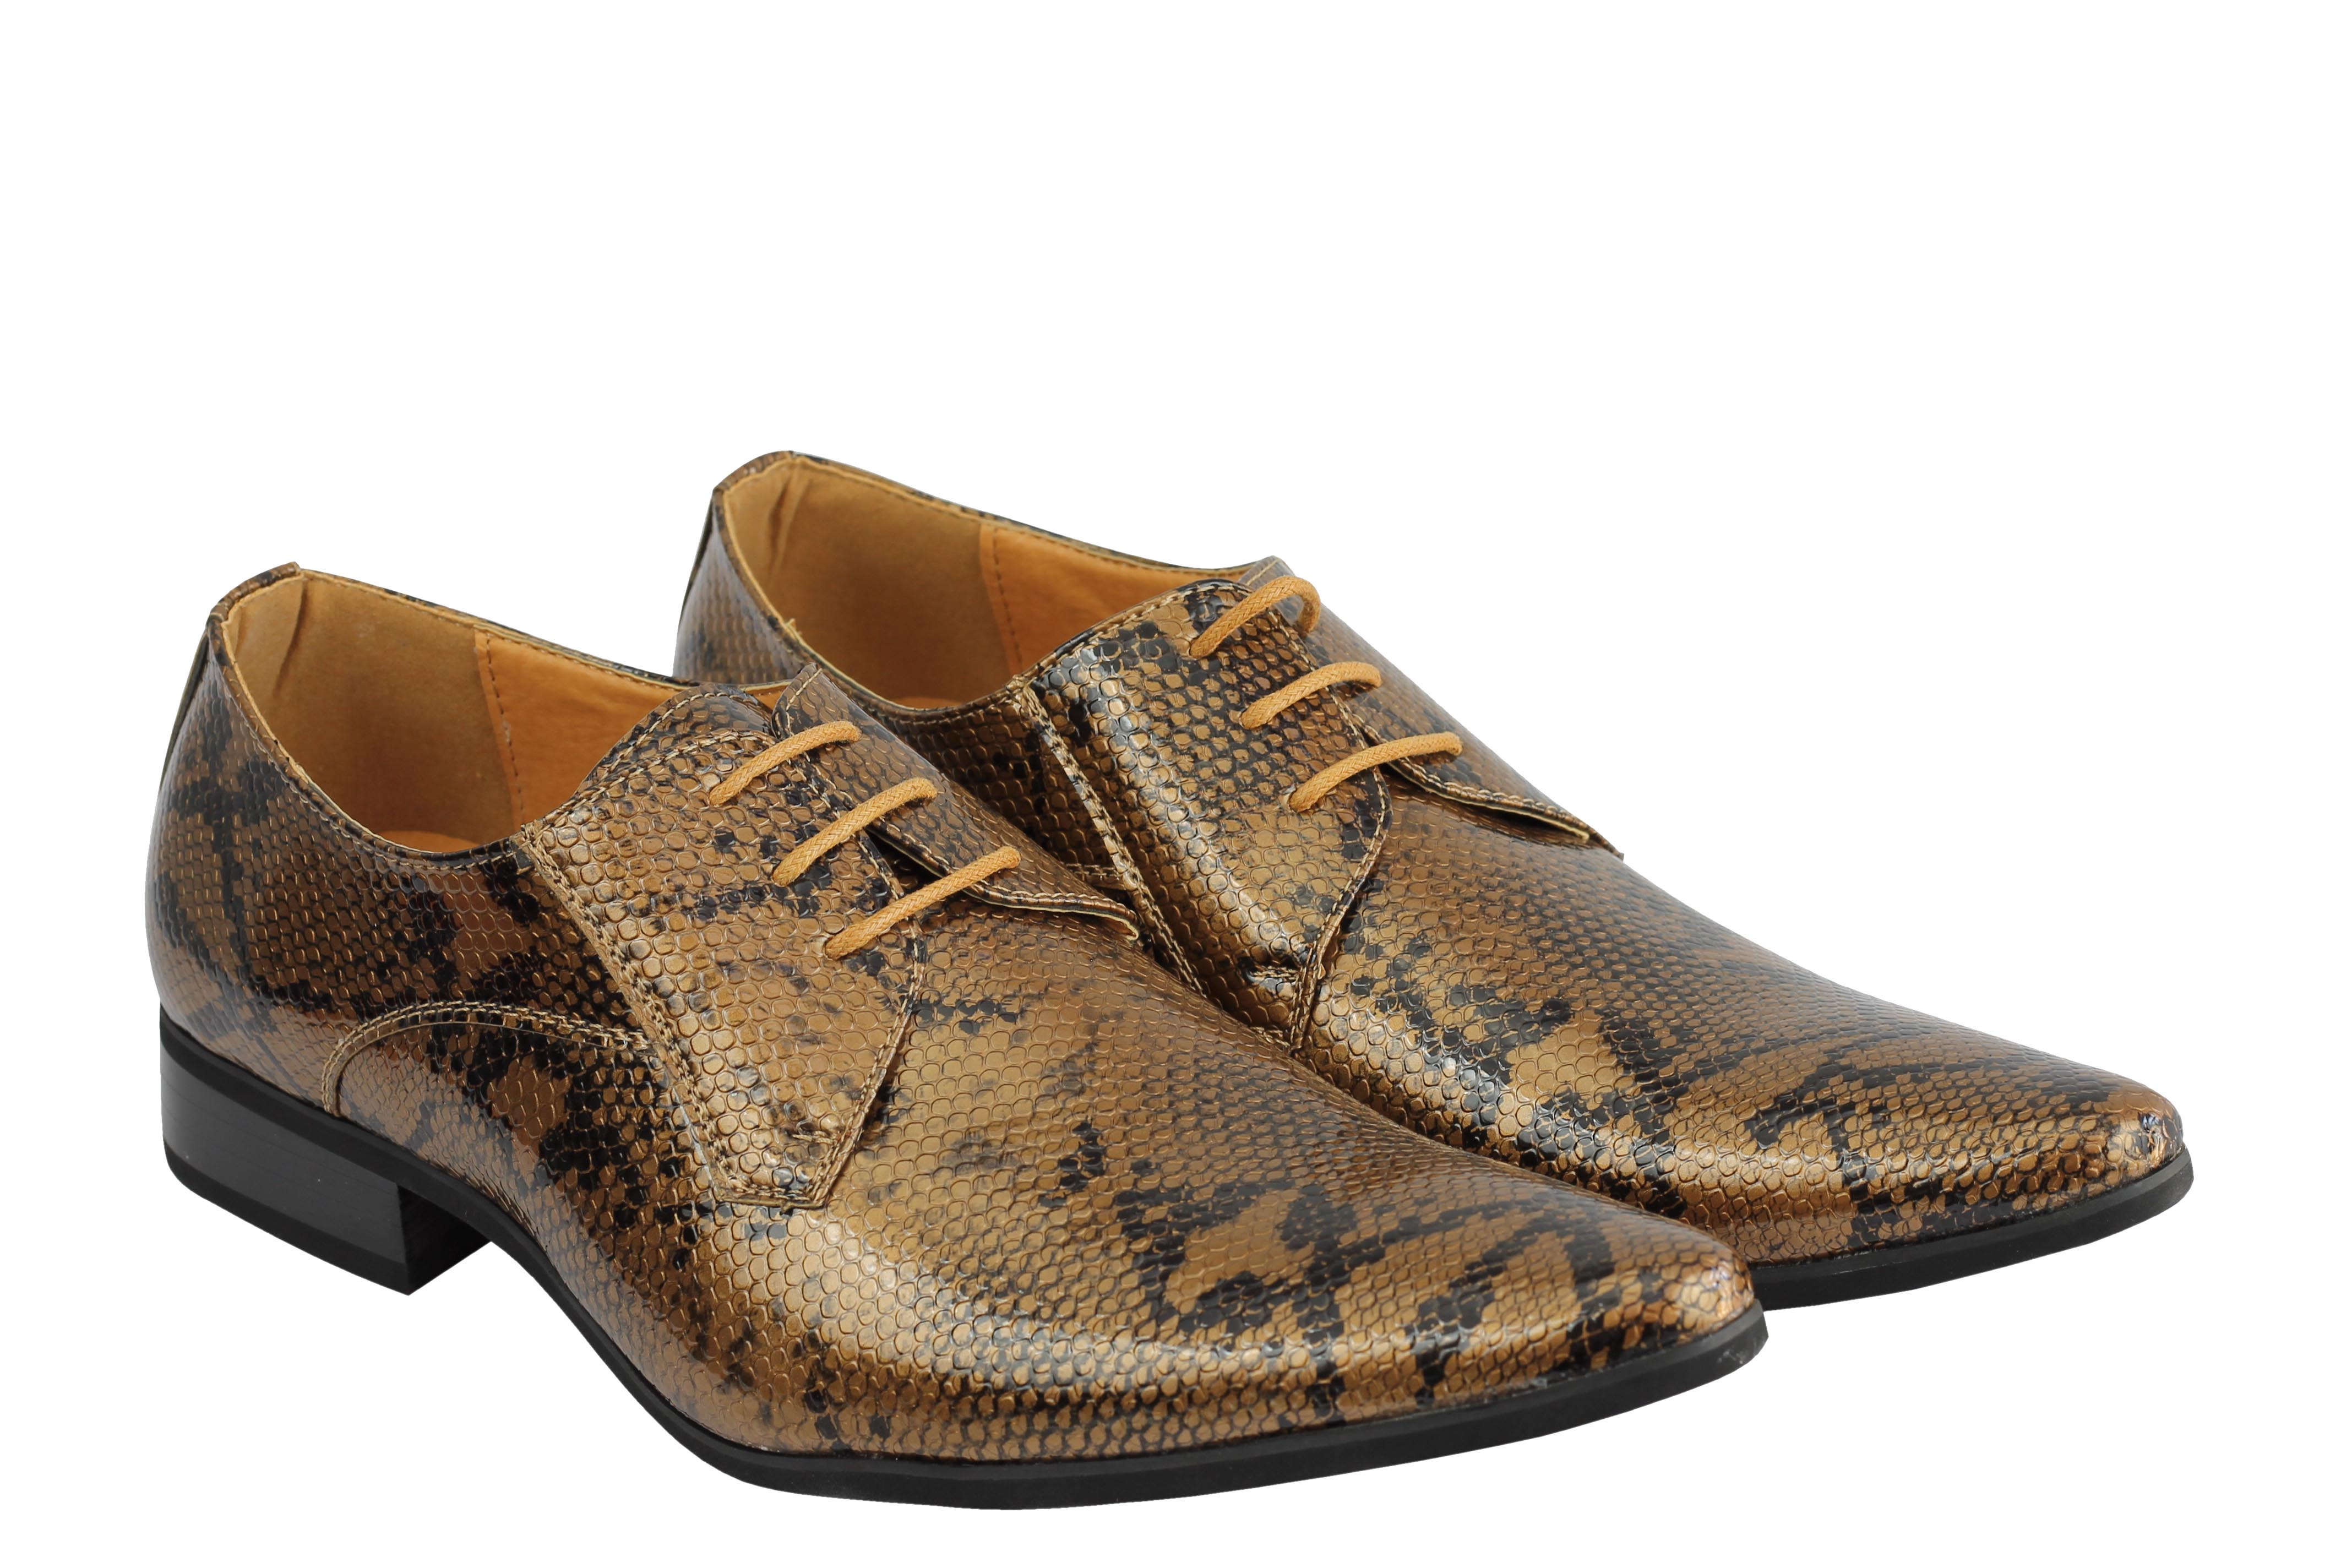 Mens-Leather-Lined-Snake-Skin-Print-Shiny-Patent-Leather-Smart-Party-Retro-Shoes thumbnail 9